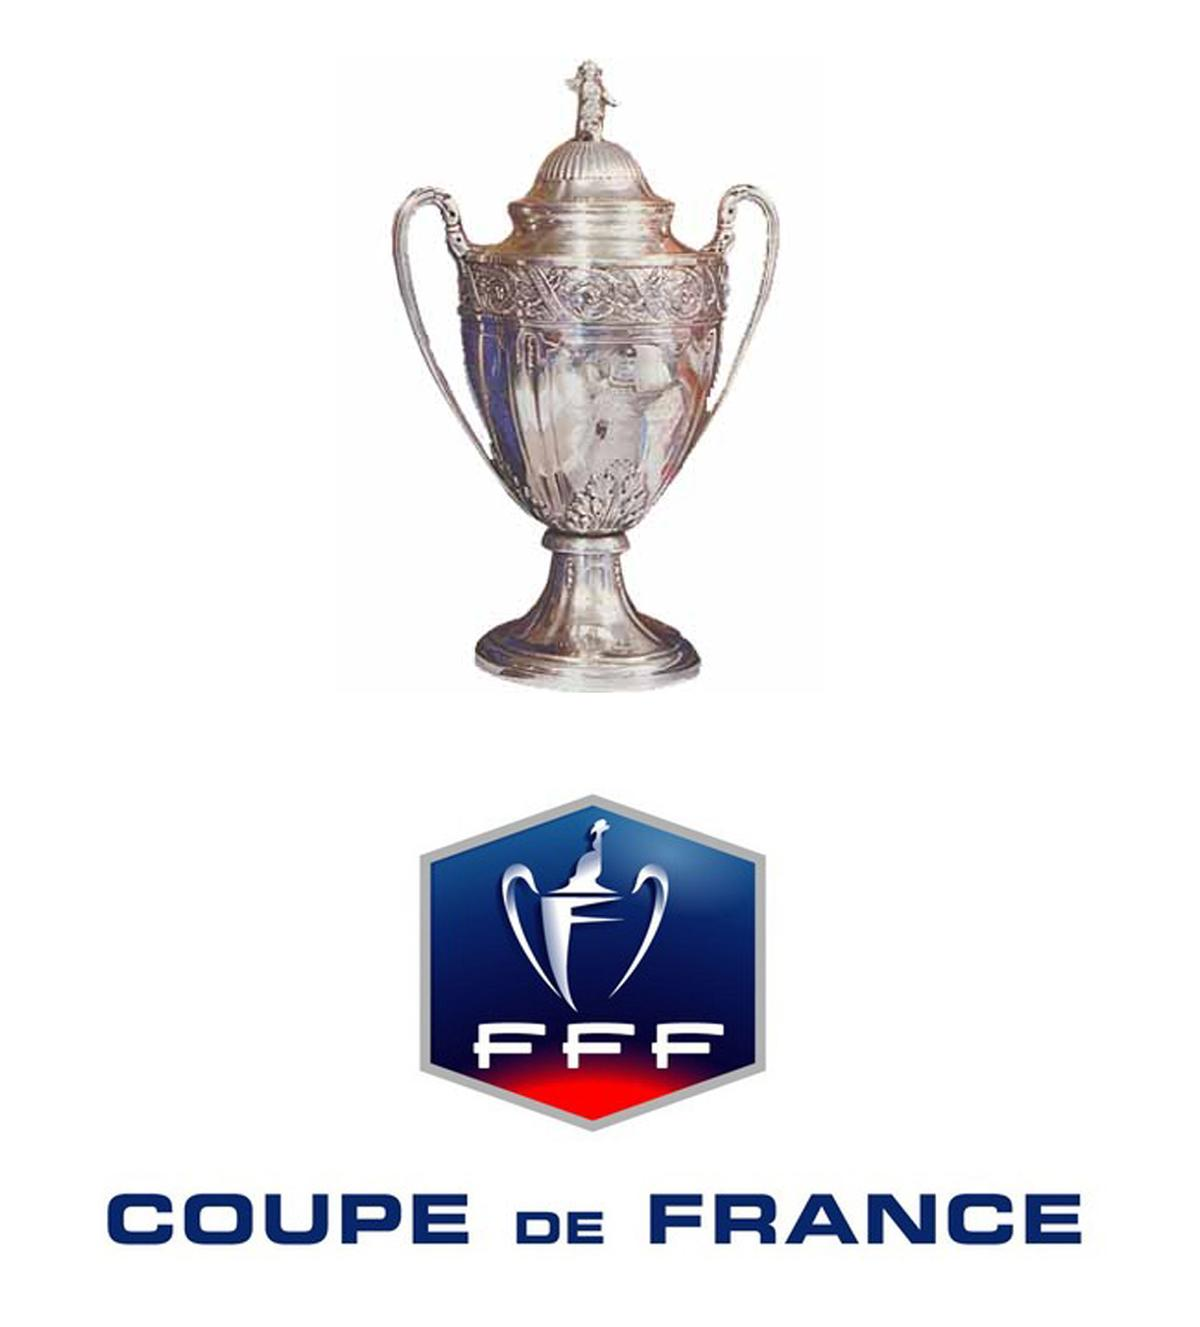 Actualit tirage au sort du 1er tour de coupe de france - Tirage au sort coupe de france 8eme tour ...